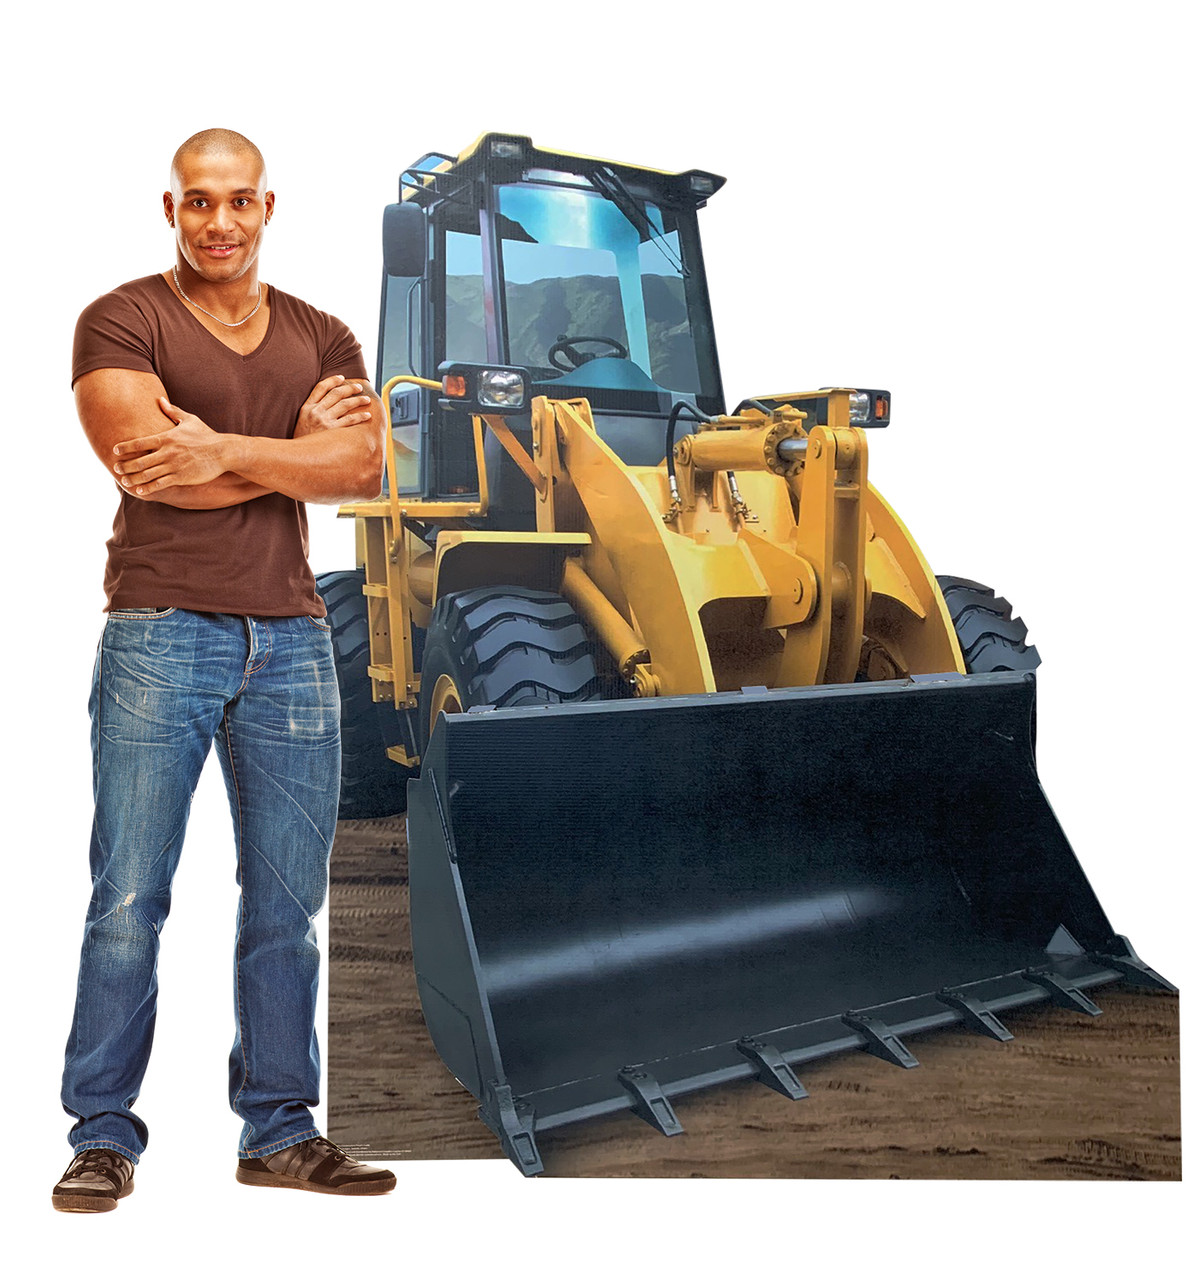 Life-size cardboard standee of construction front loader with model.